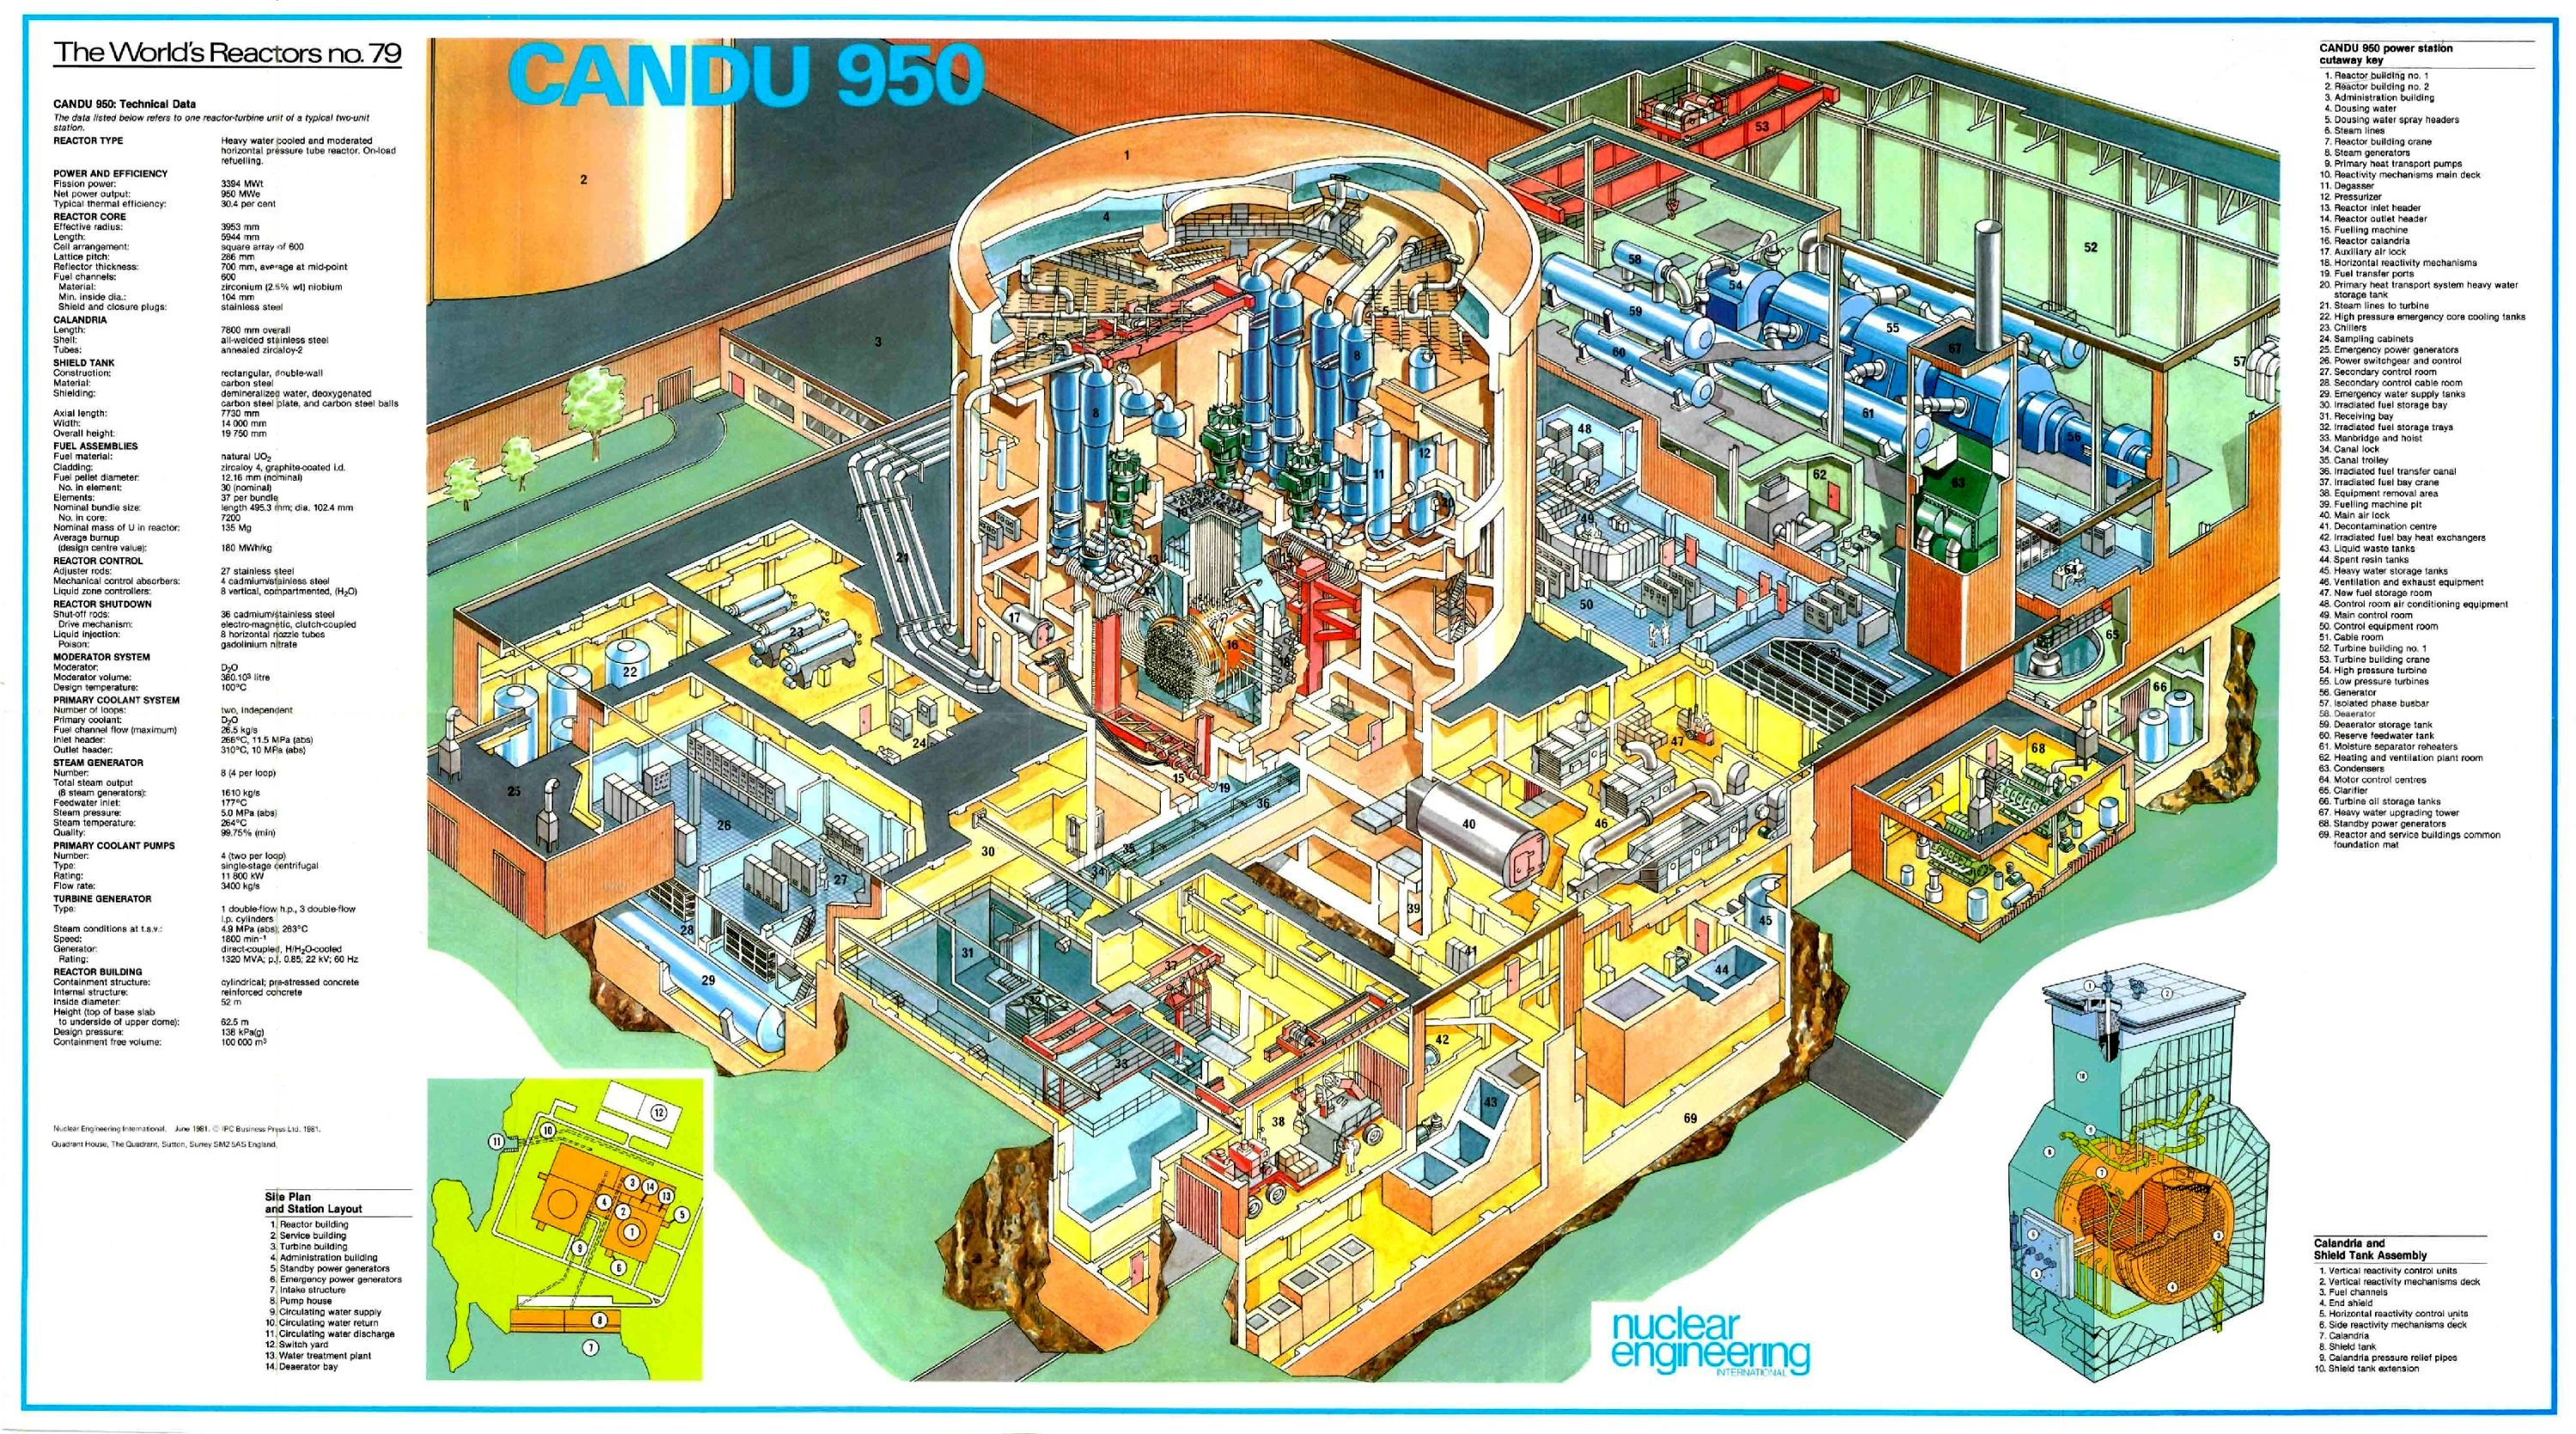 The Candu Short For Canada Deuterium Uranium Reactor Is A Canadian Power Plant Diagram Boiling Water Developed Pressurized Heavy Used Generating Electric